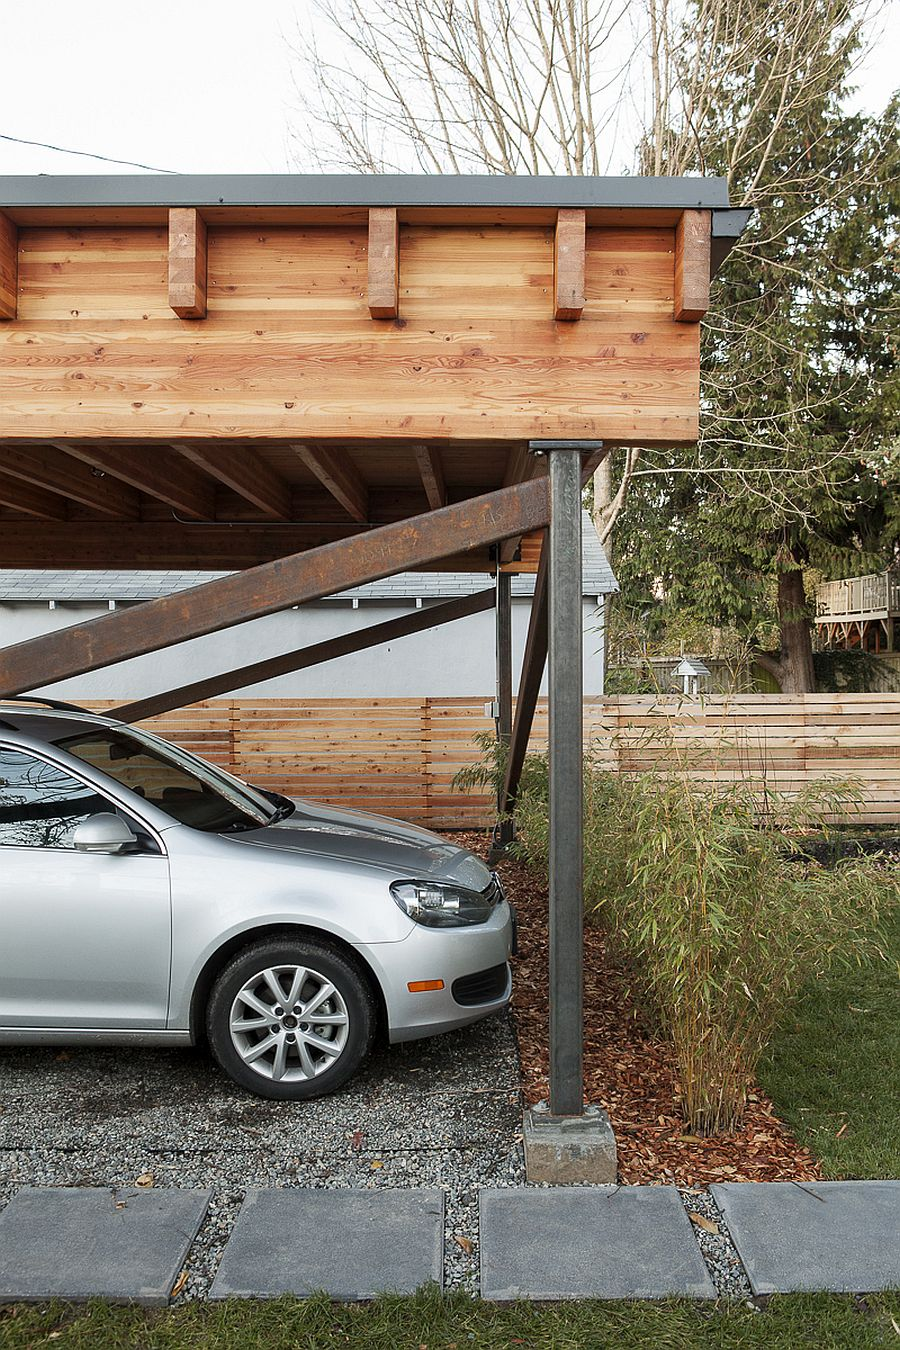 Garage of the passive home in Seattle with eco-conscious design